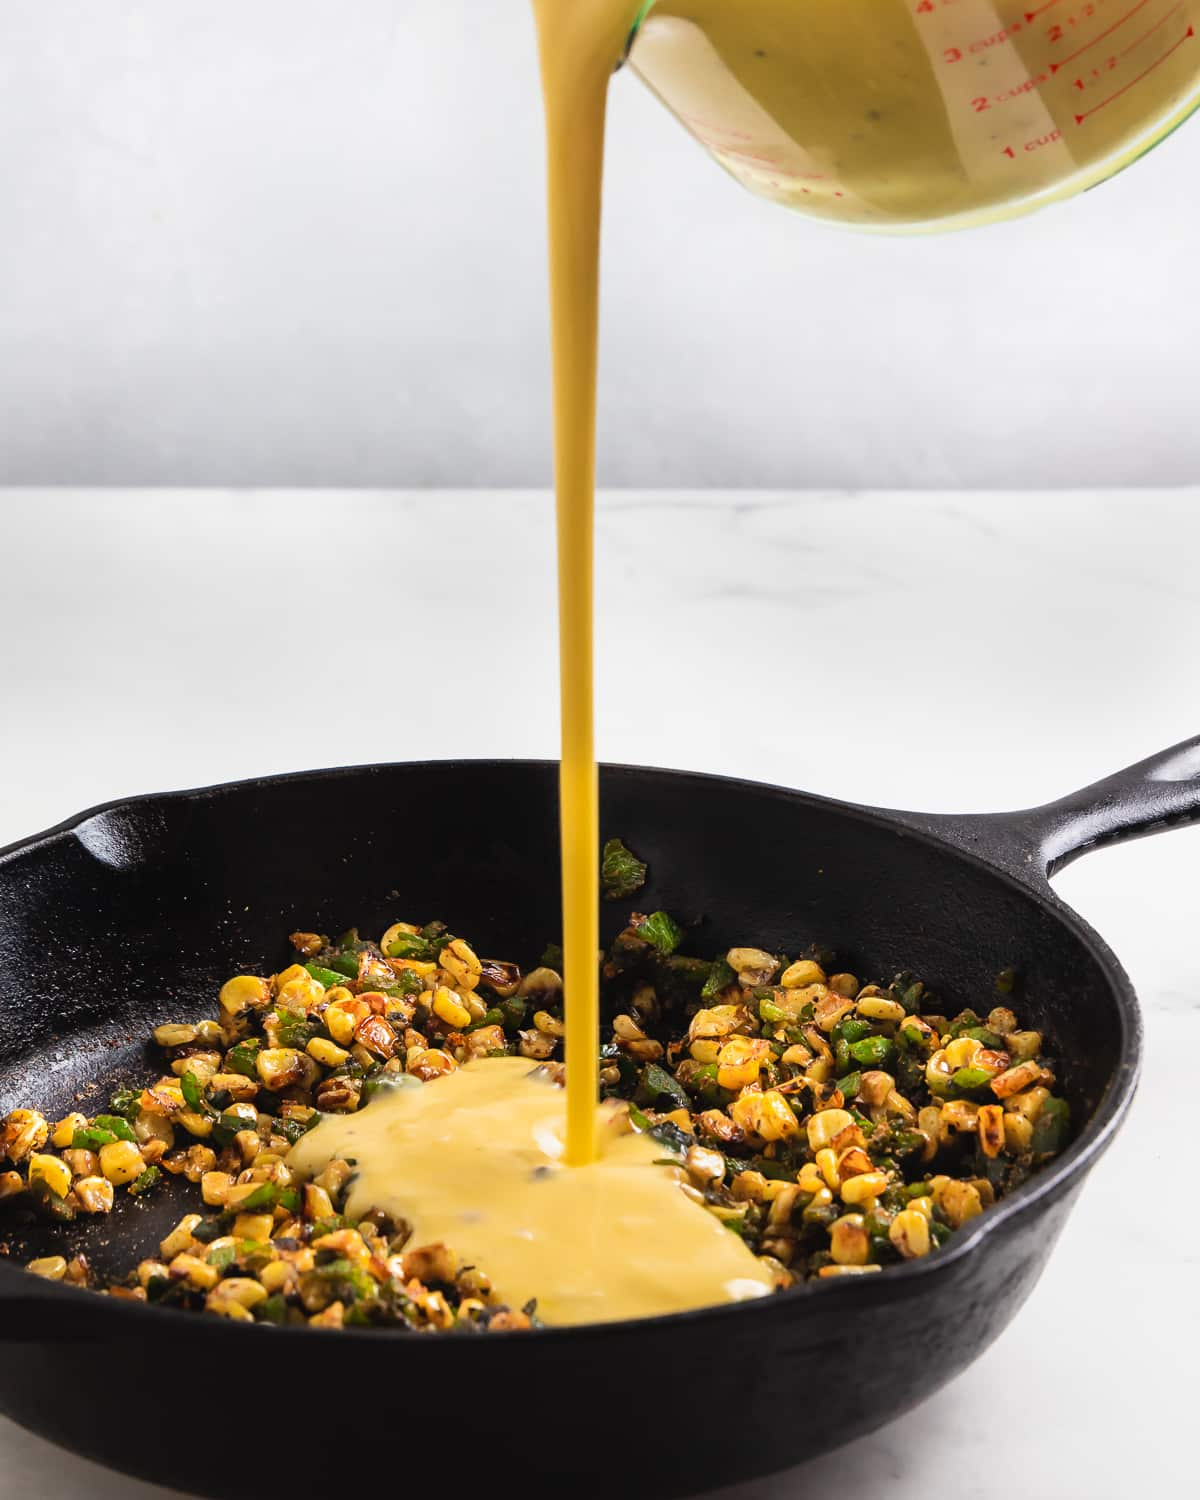 cast iron skillet with charred corn and poblano peppers, pouring egg mixture in from a glass measuring cup